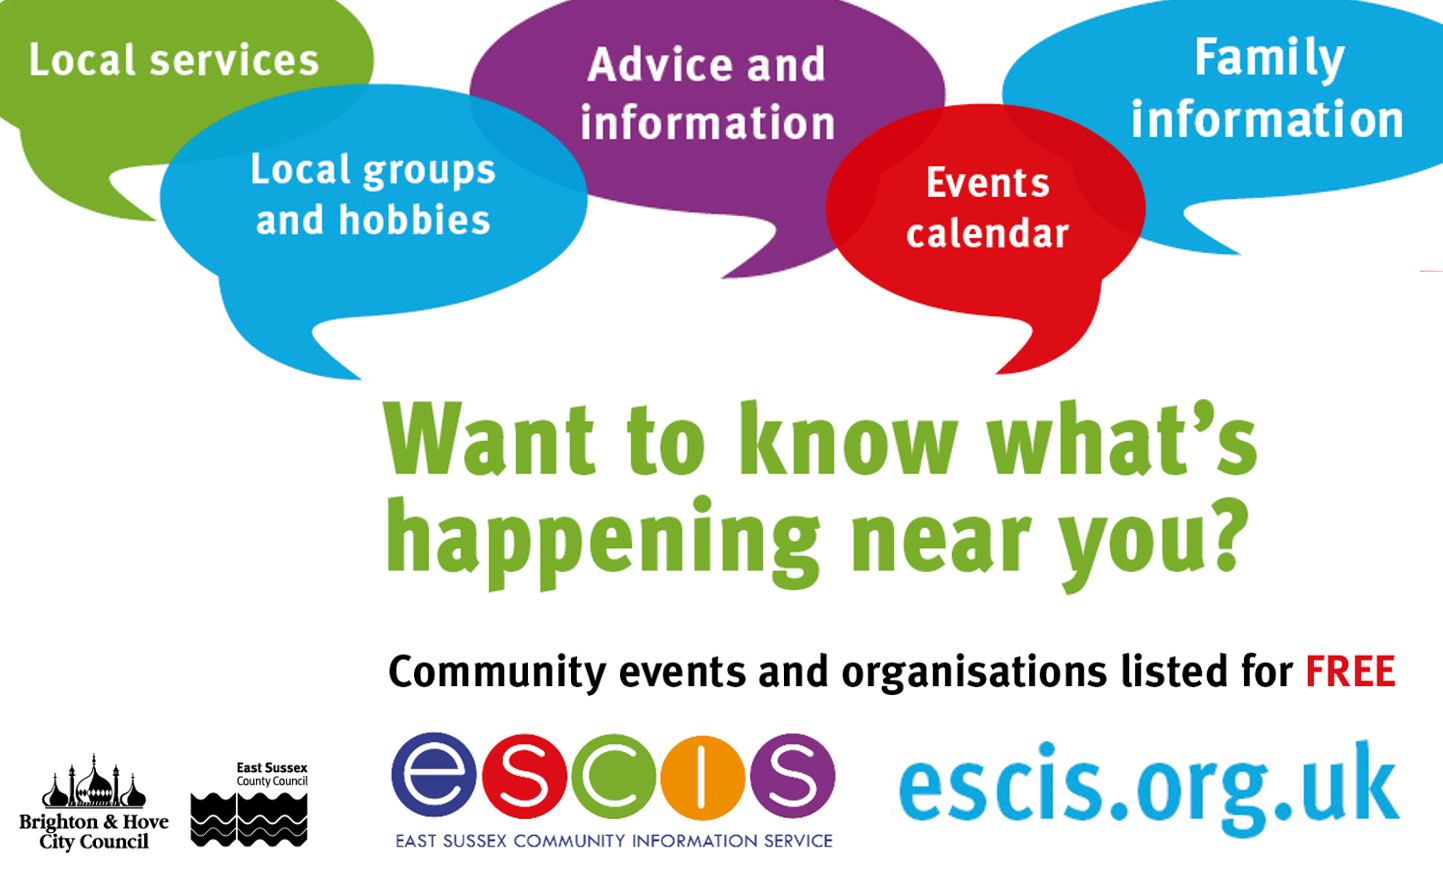 Local services.  Local groups and hobbies.  Advice and information.  Events calendar.  Family information.  Want to know what's happening near you? Community Events and organisations listed for free,  East Sussex Community Information service.  escis.org.uk